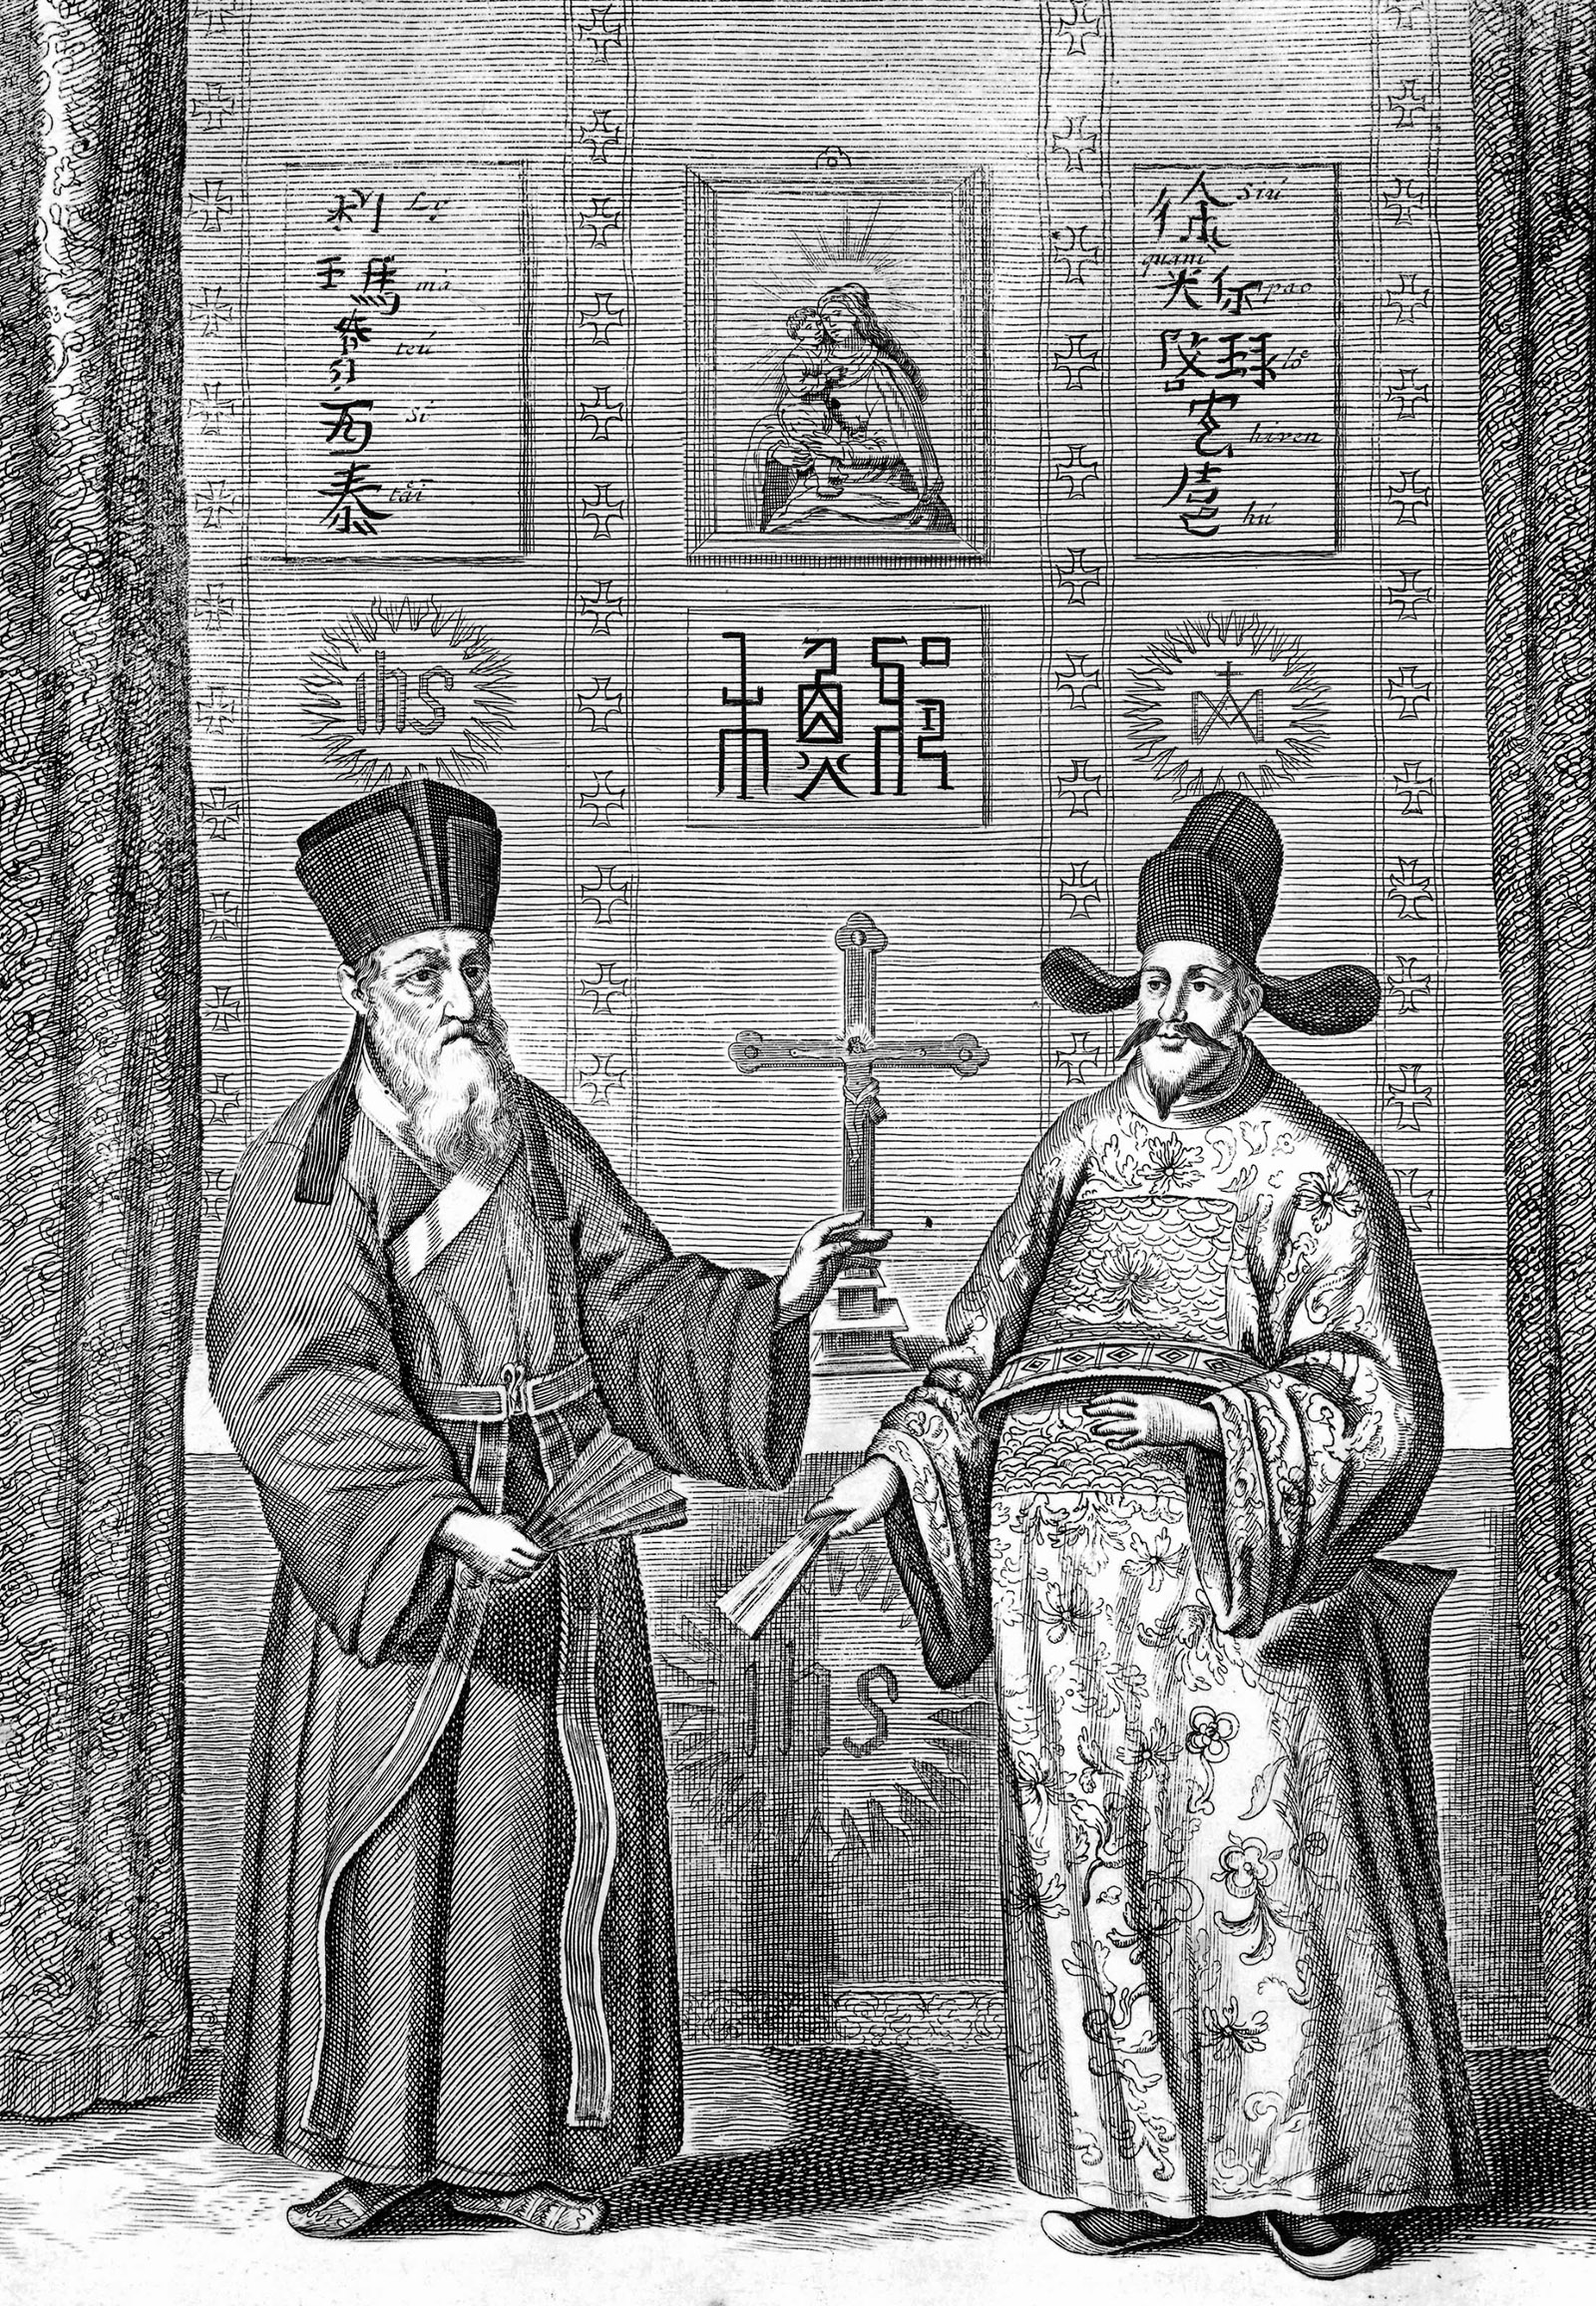 Jesuit priest Matteo Ricci and the Ming court official Xu Guangqi from Athanasius Kircher's China Illustrata